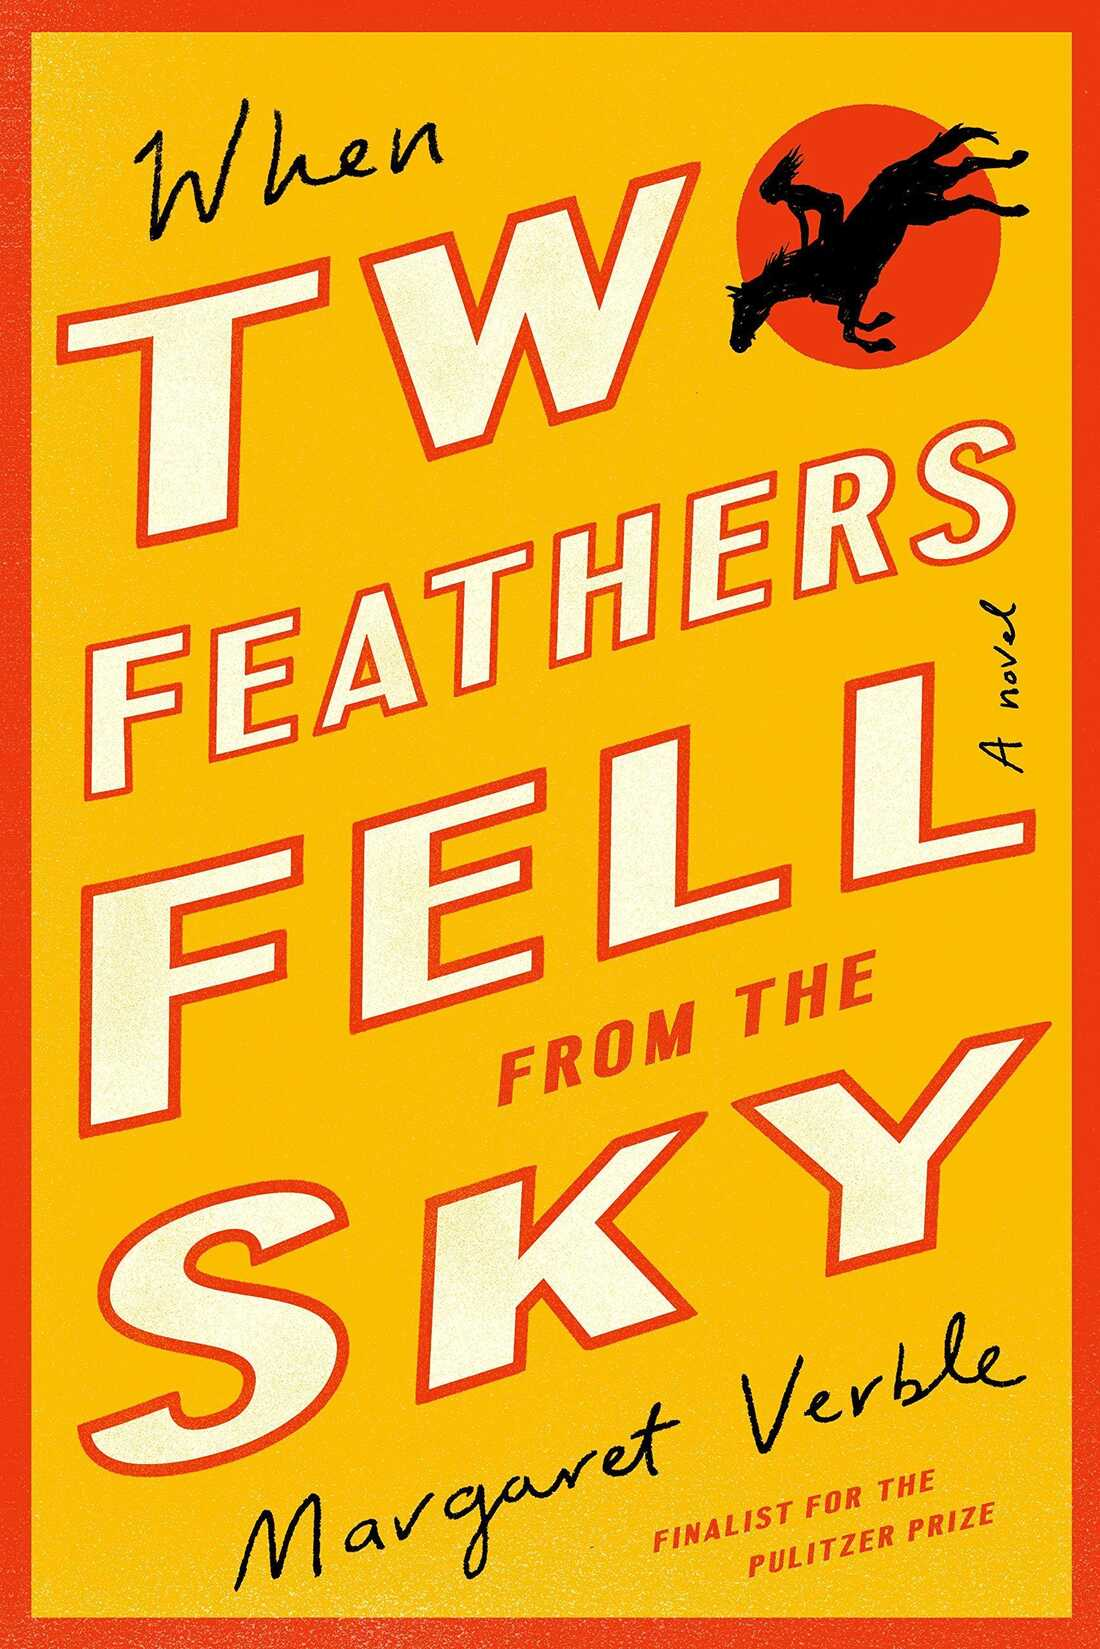 When Two Feathers Fell From the Sky, by Margaret Verble.